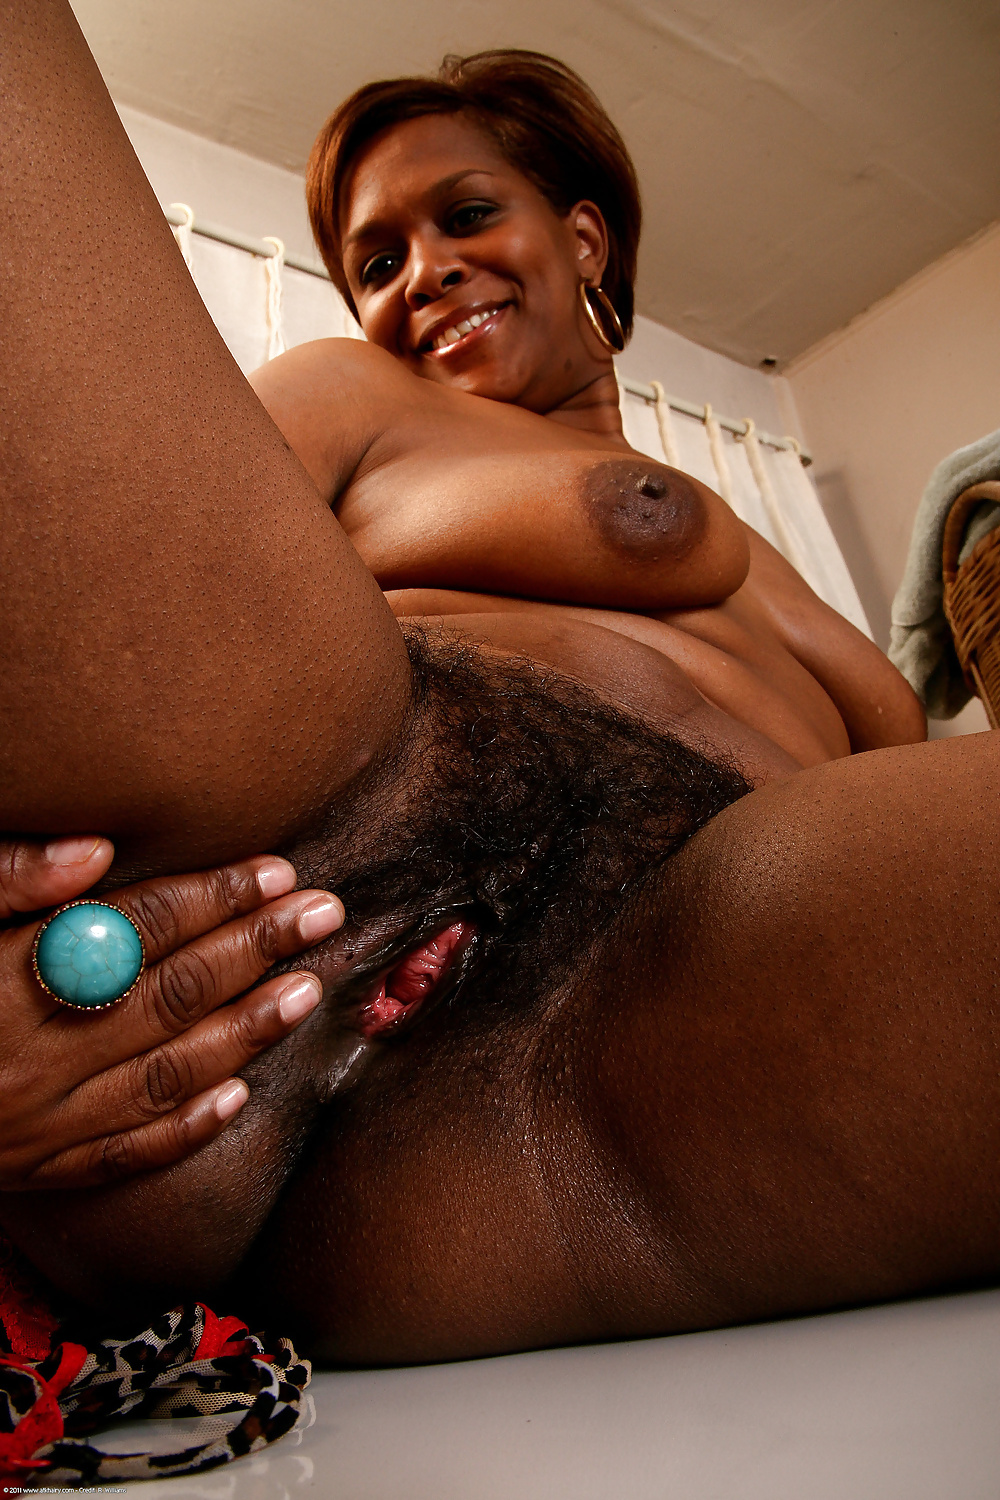 Black Women- Ebony Voyeur Panties - Hairy Pussies - 12 Pics - Xhamstercom-8809